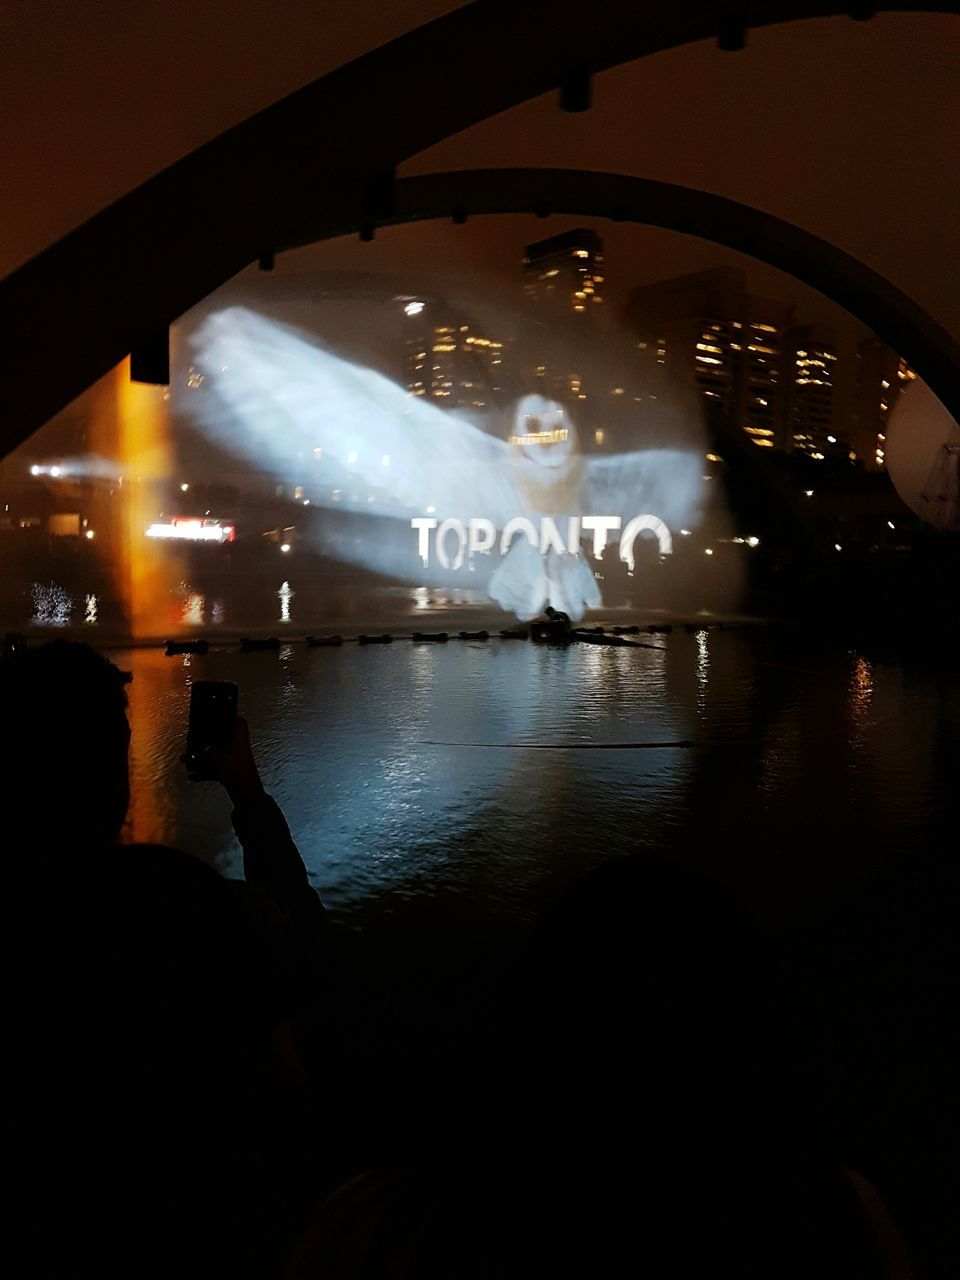 illuminated, night, real people, arts culture and entertainment, silhouette, large group of people, indoors, men, water, nightlife, architecture, nature